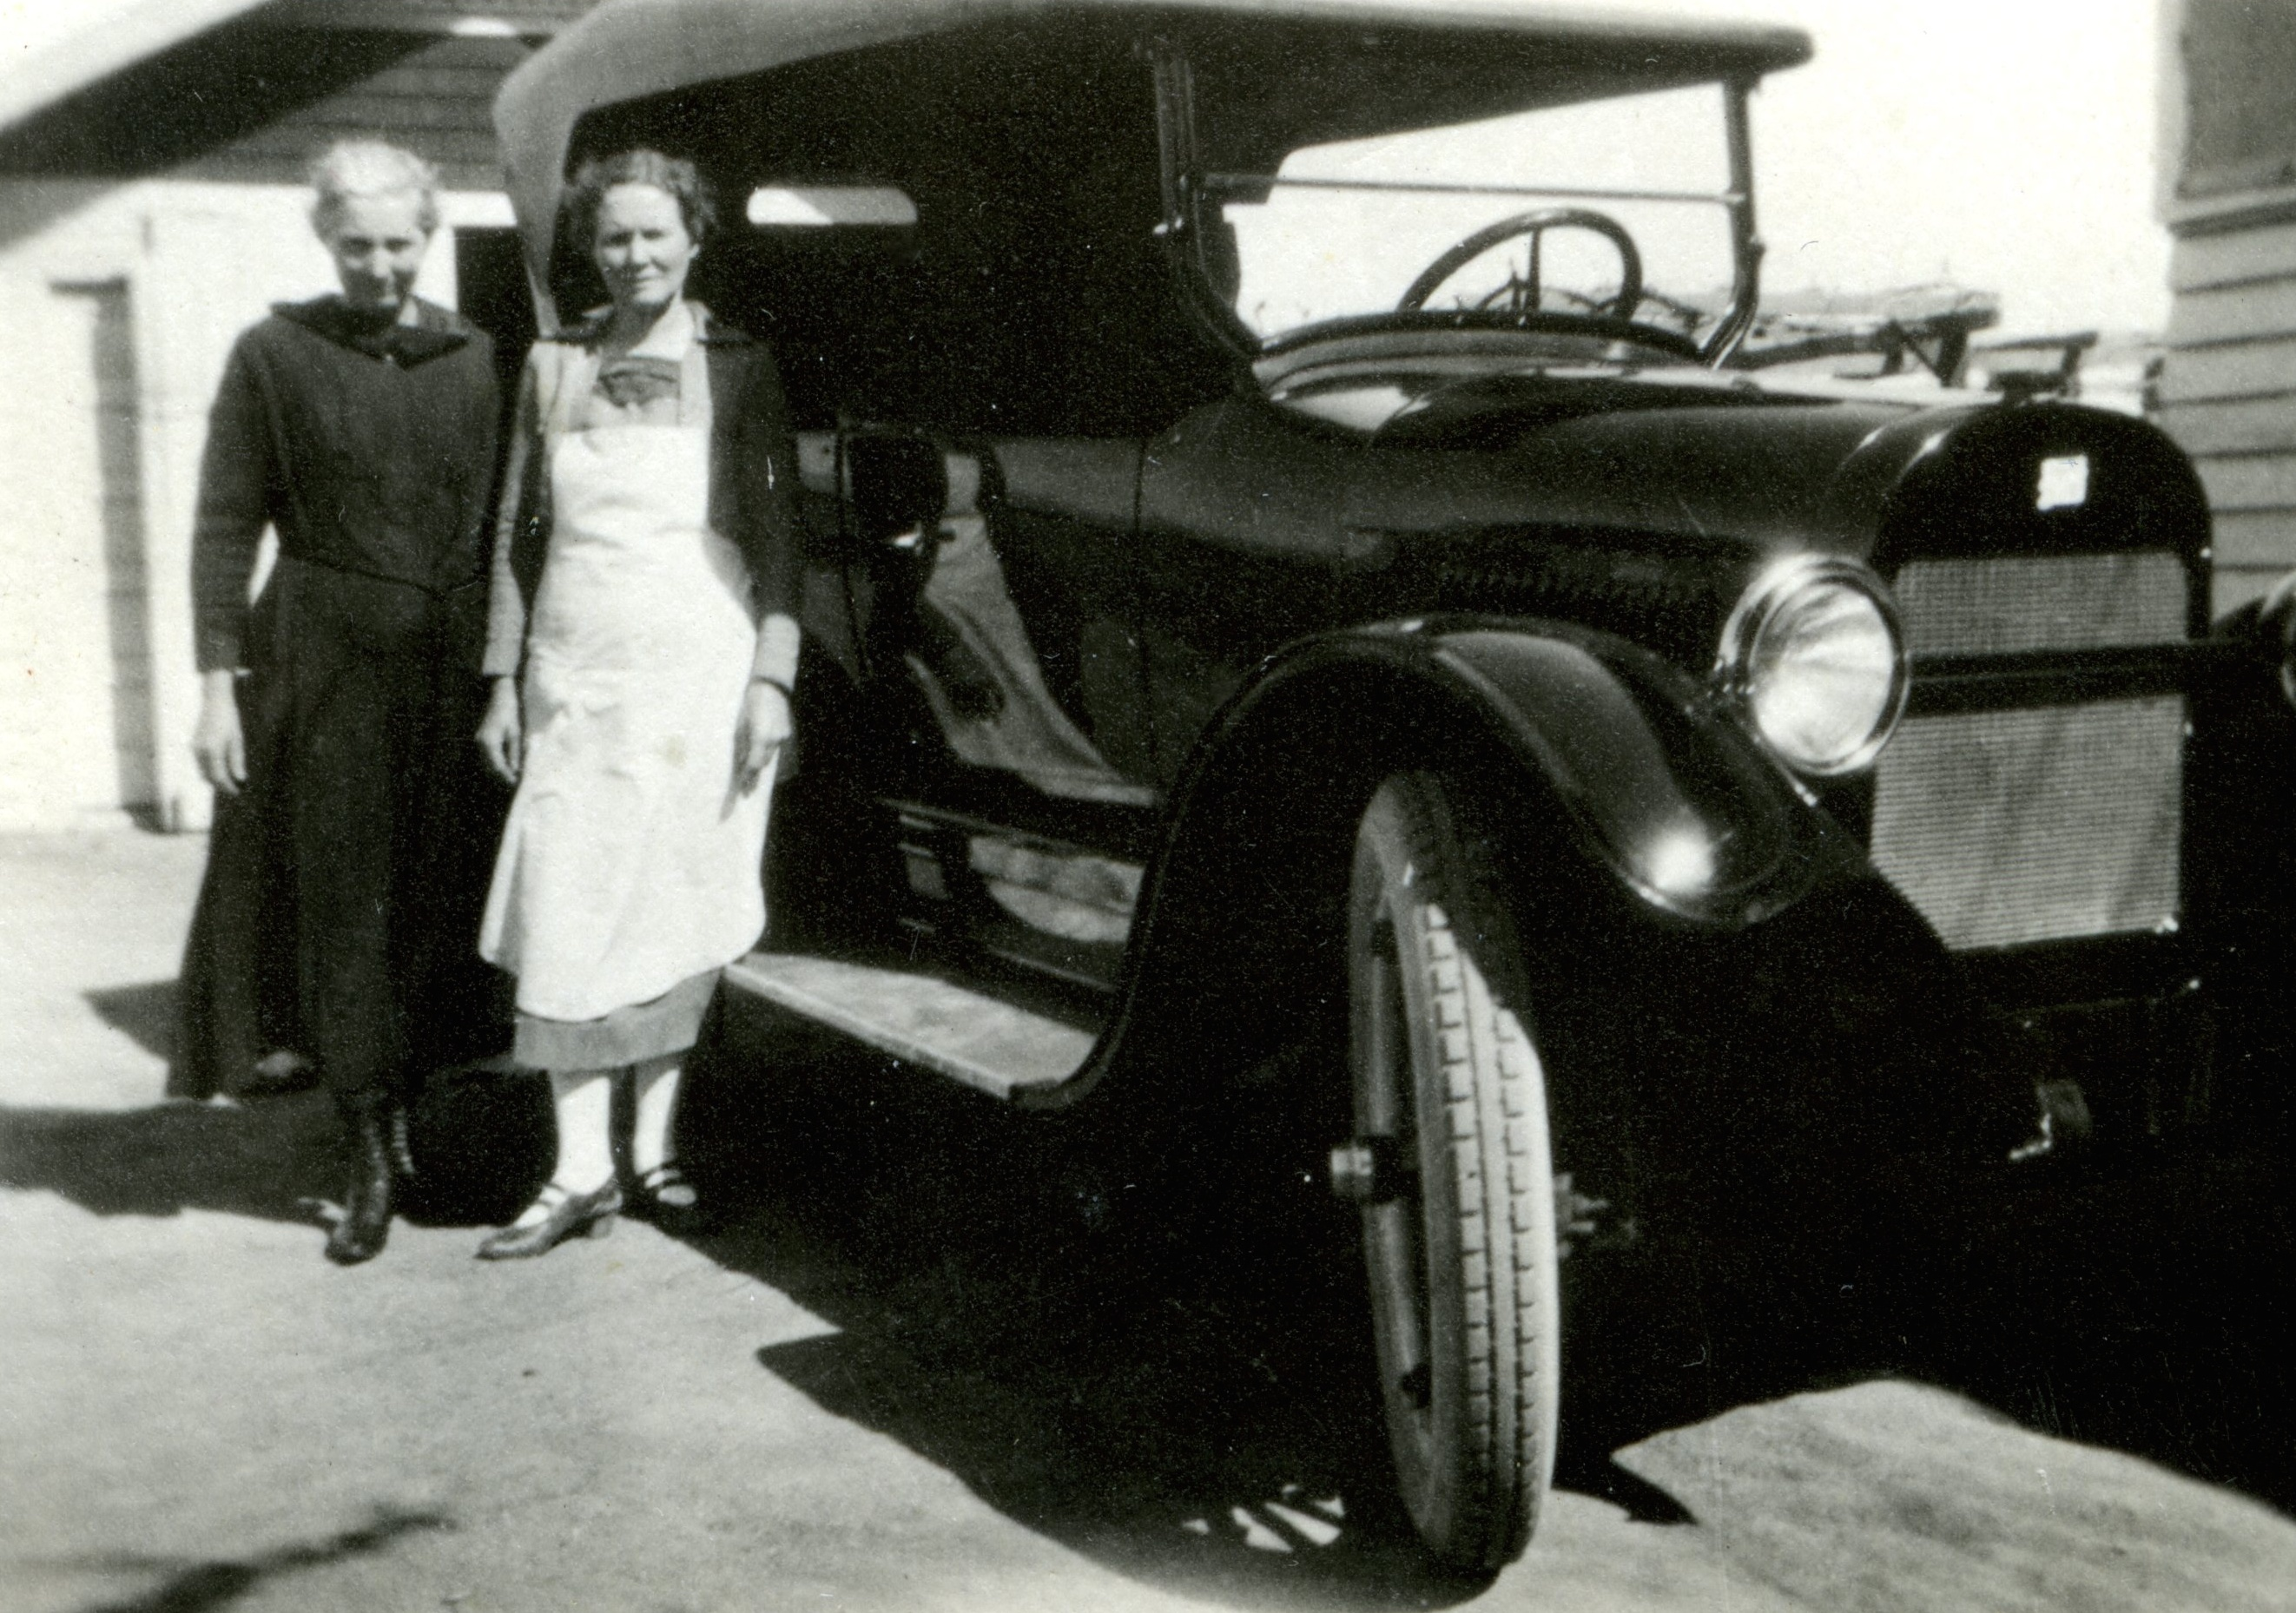 Aunt Em and Aunt Laura Orchard with Uncle Ote's Buick